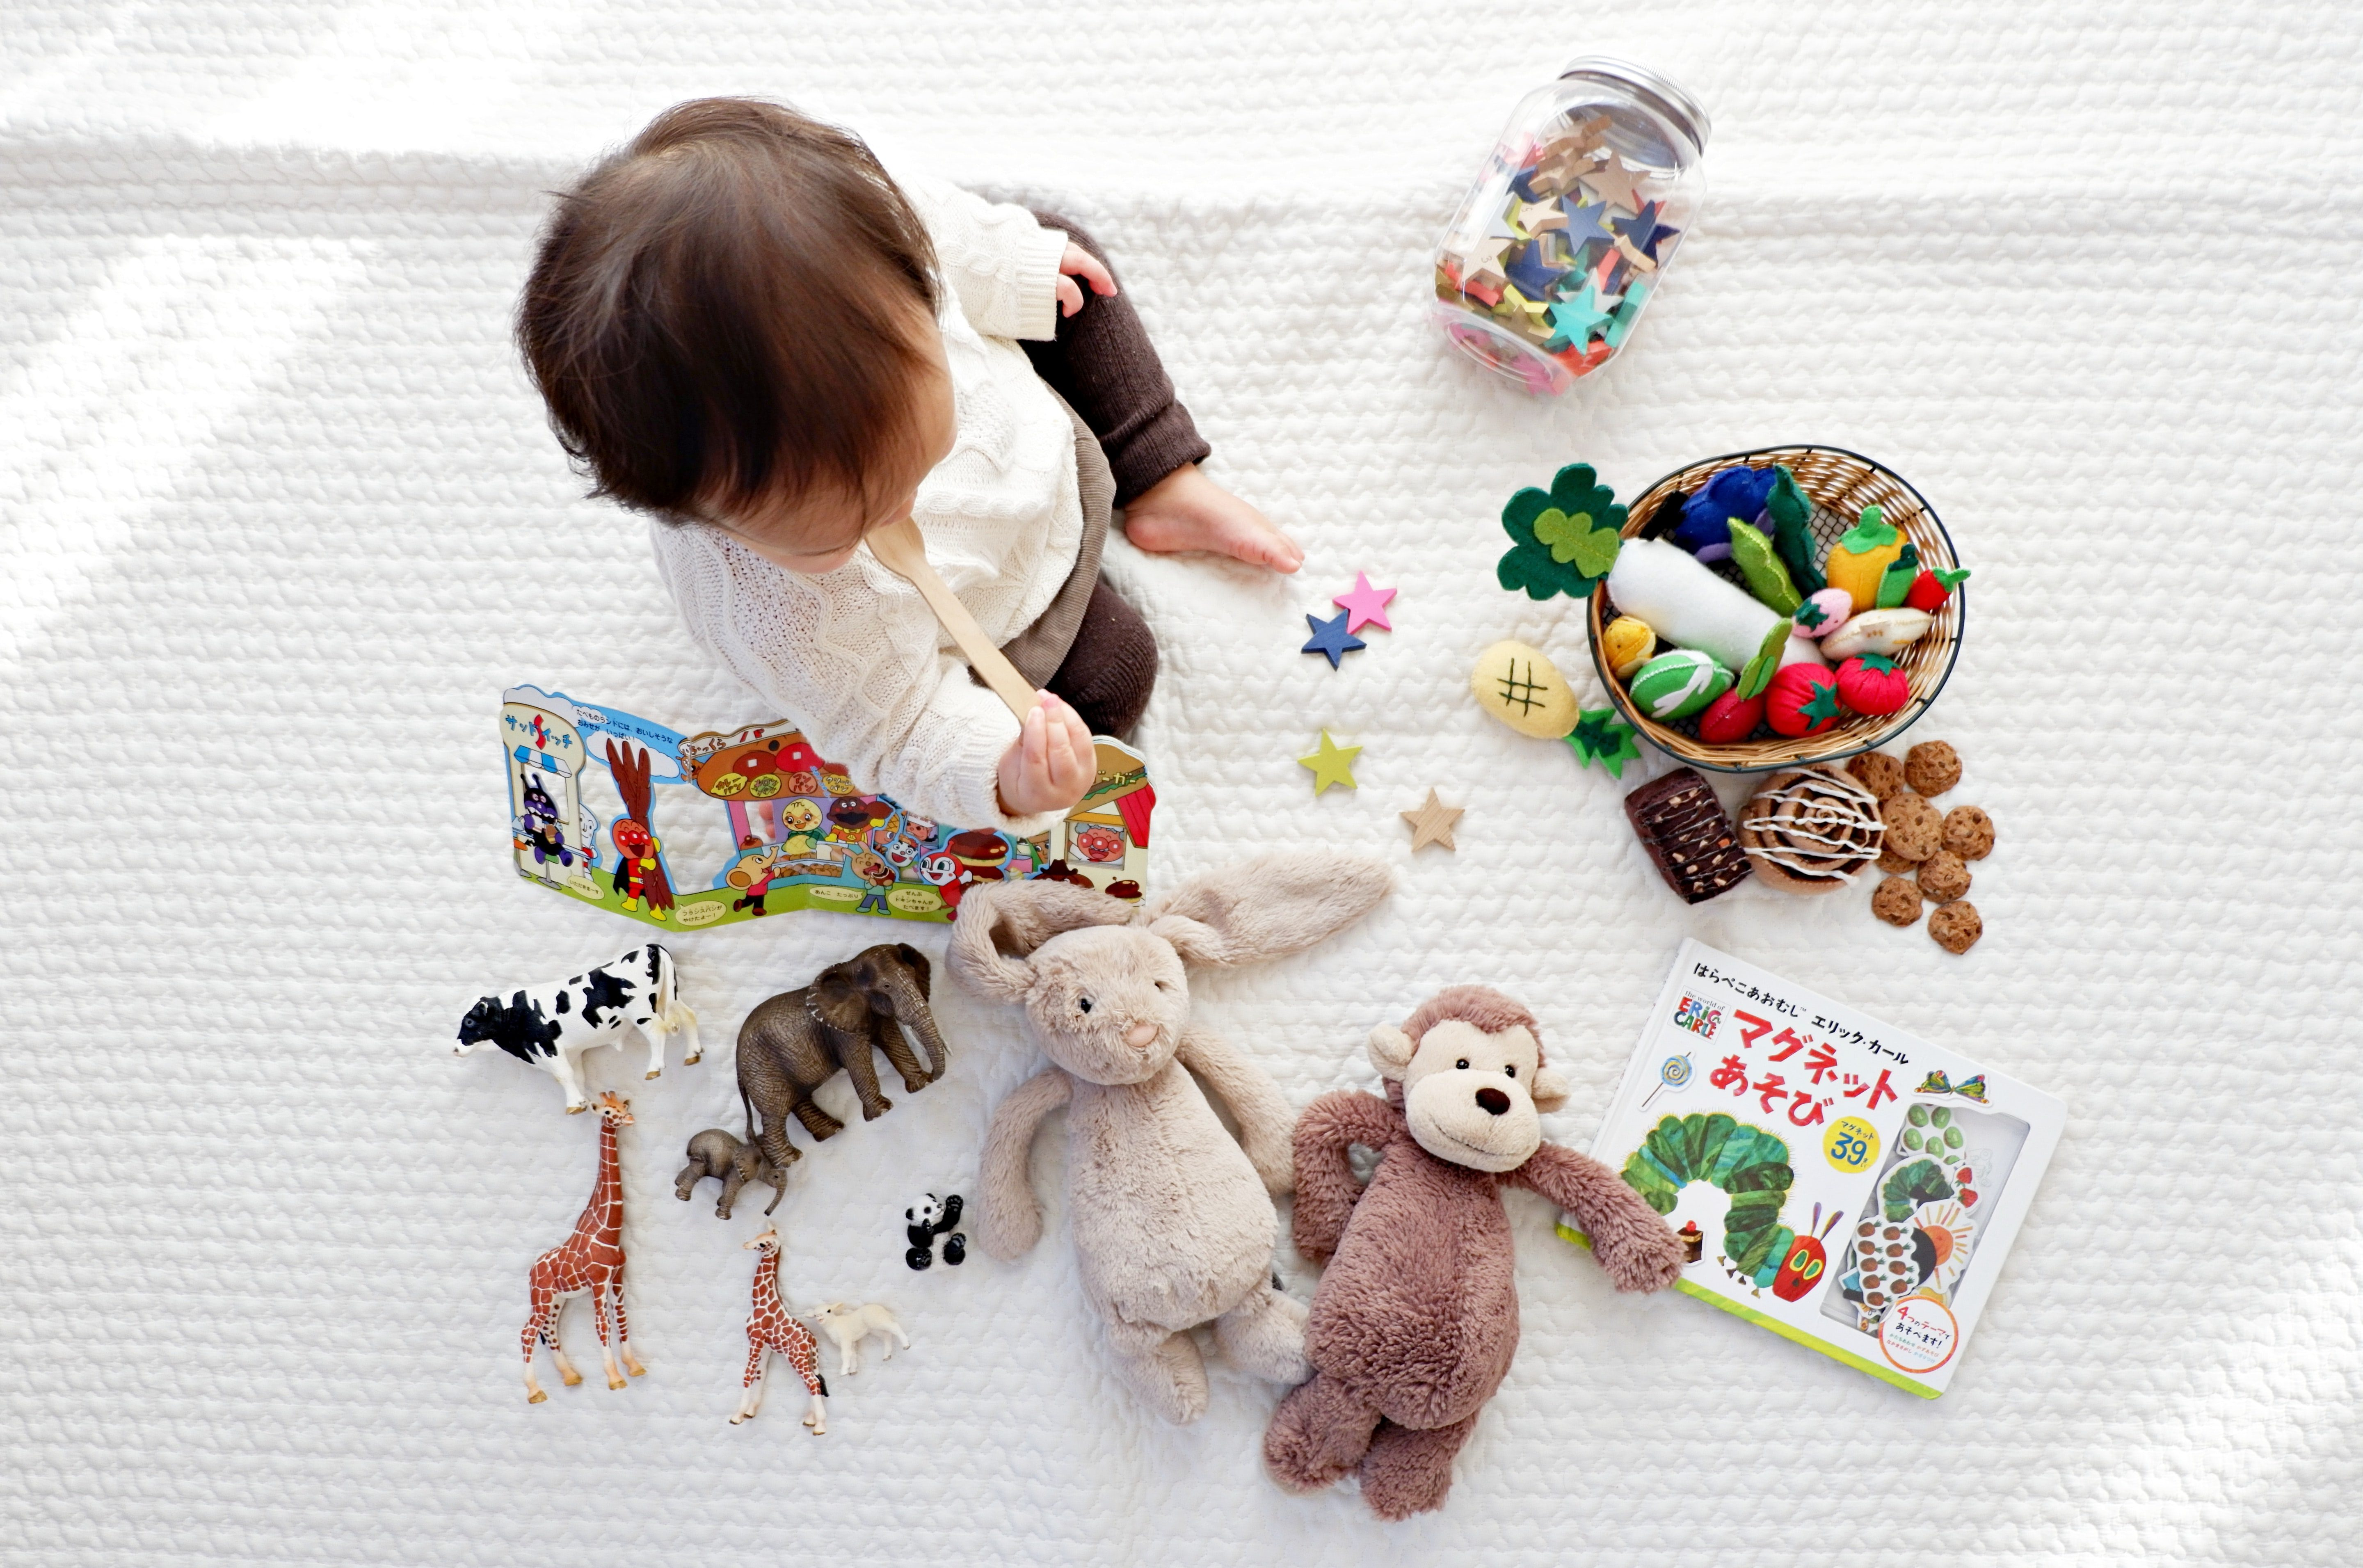 How Toys Help with Kids' Learning and Development